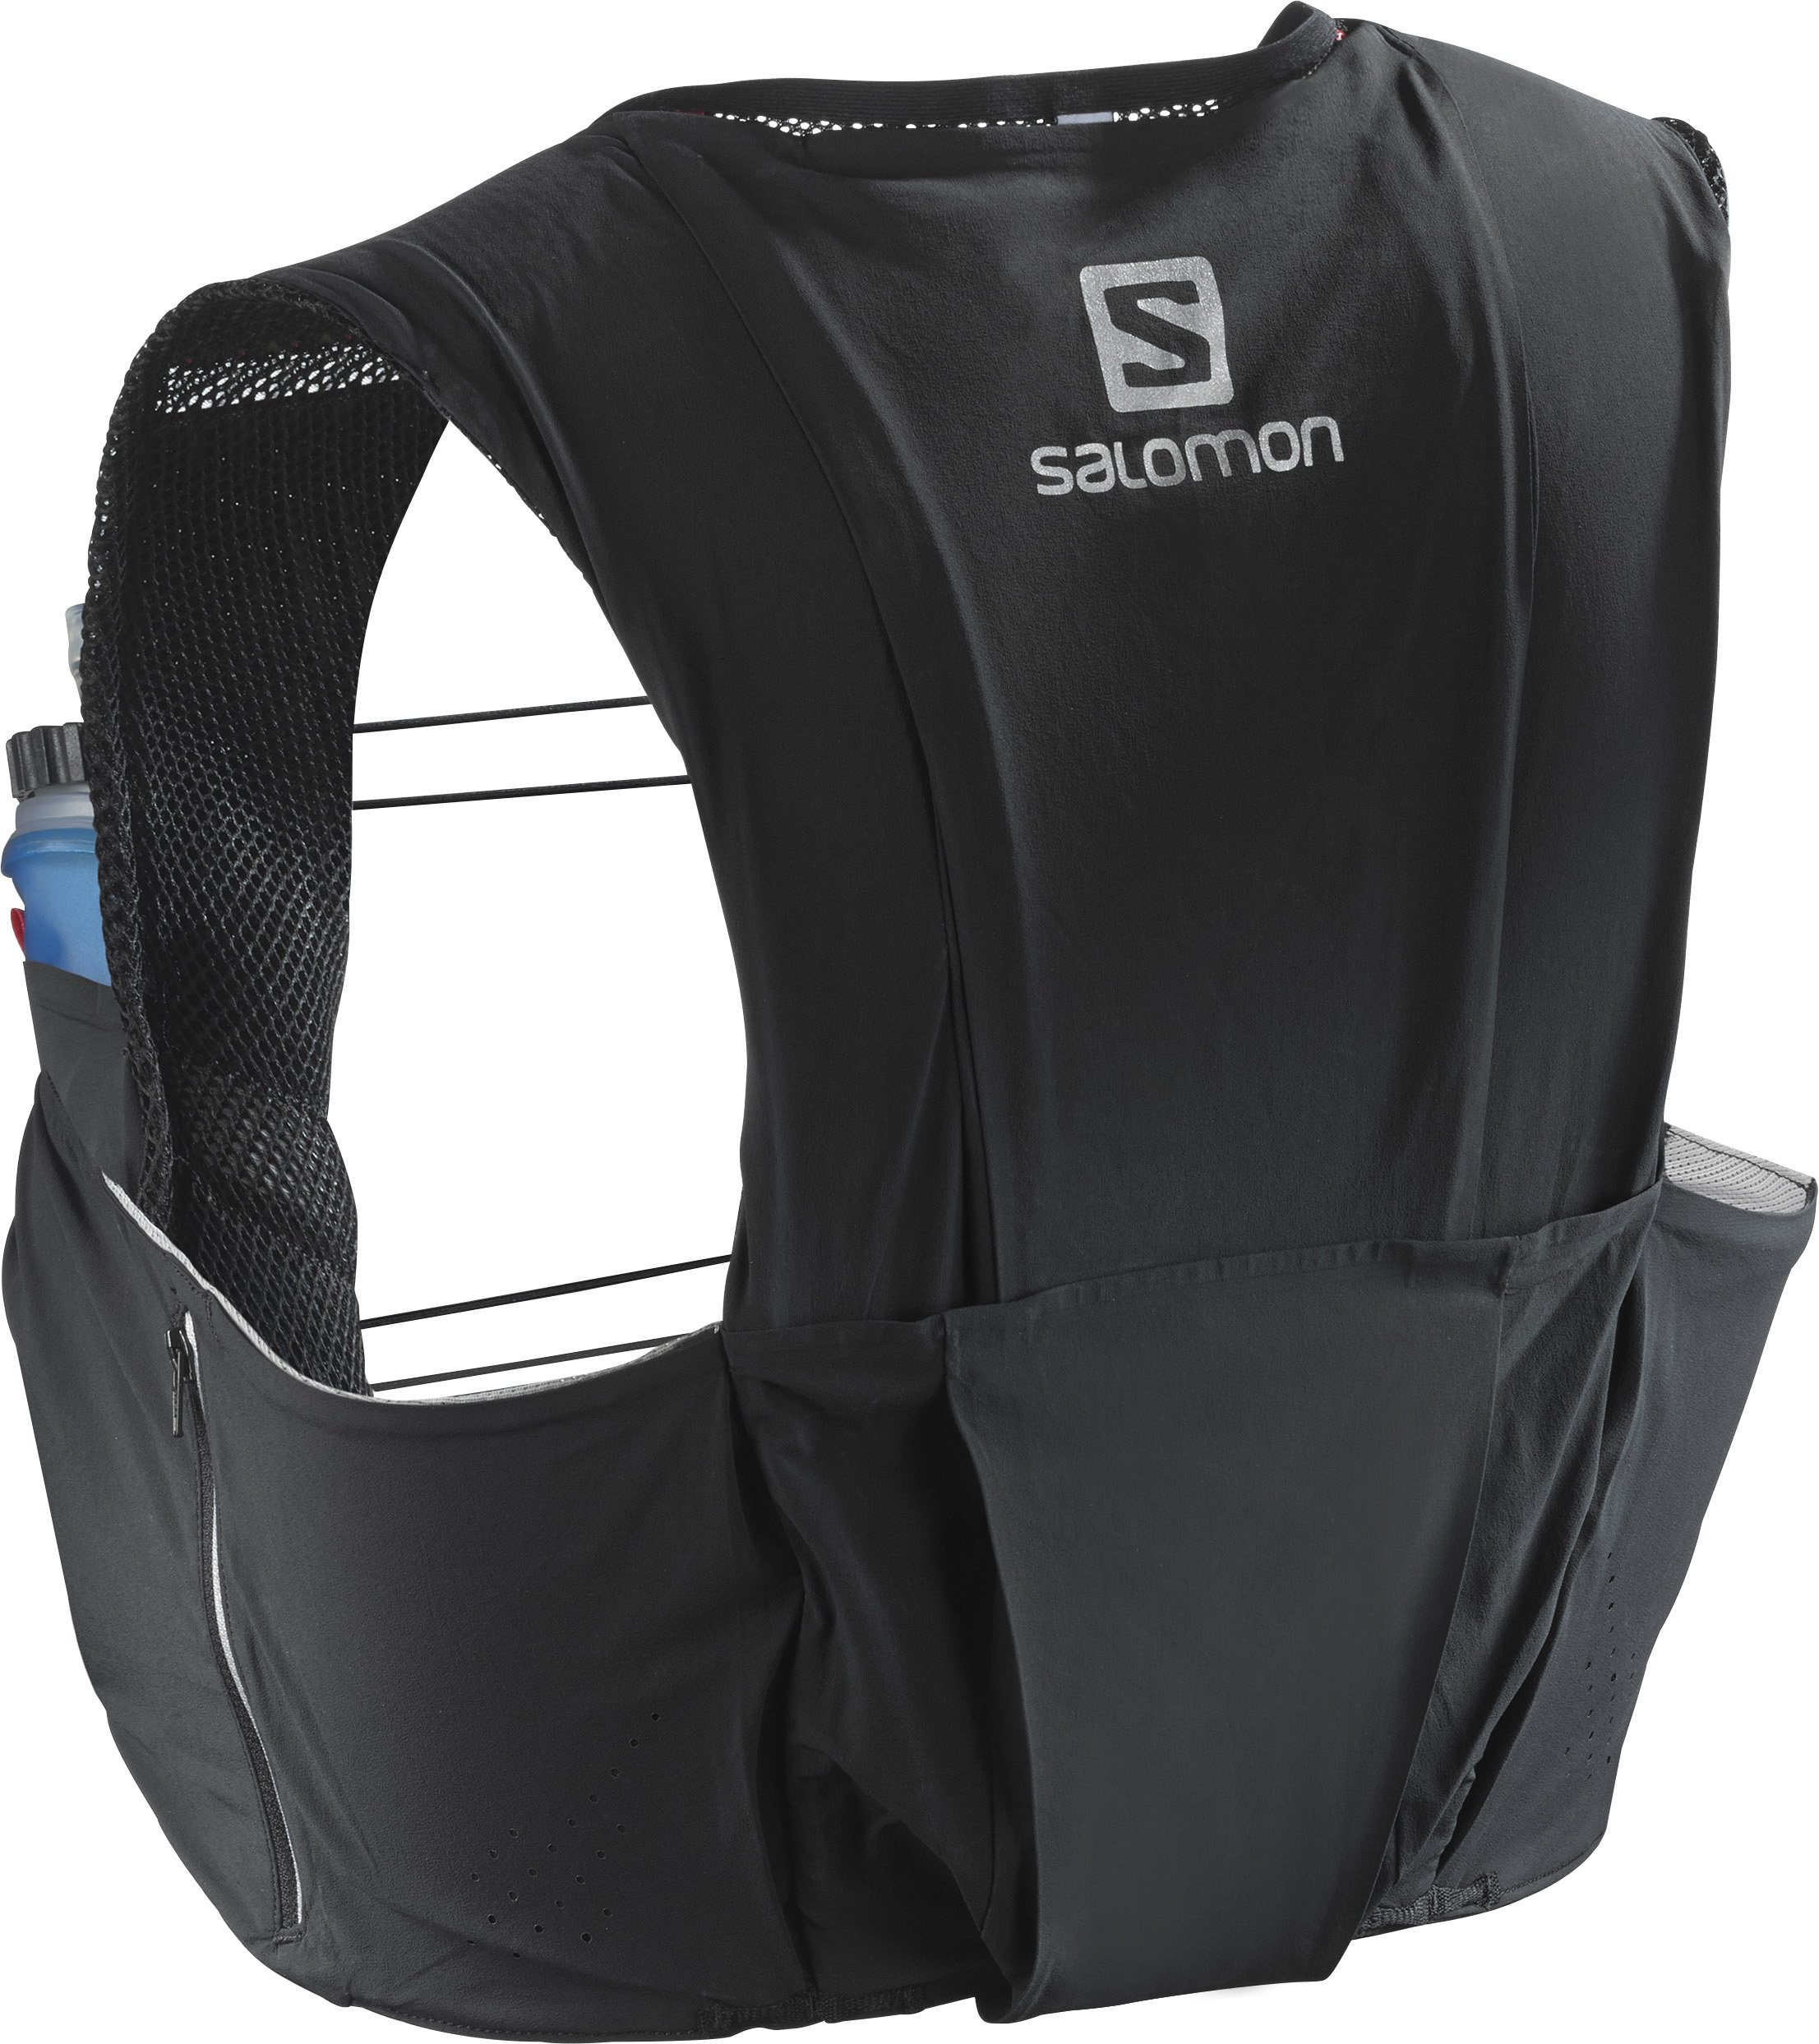 Salomon Unisex S-Lab Sense Ultra 8 Set Backpack, Black, Racing Red, XL